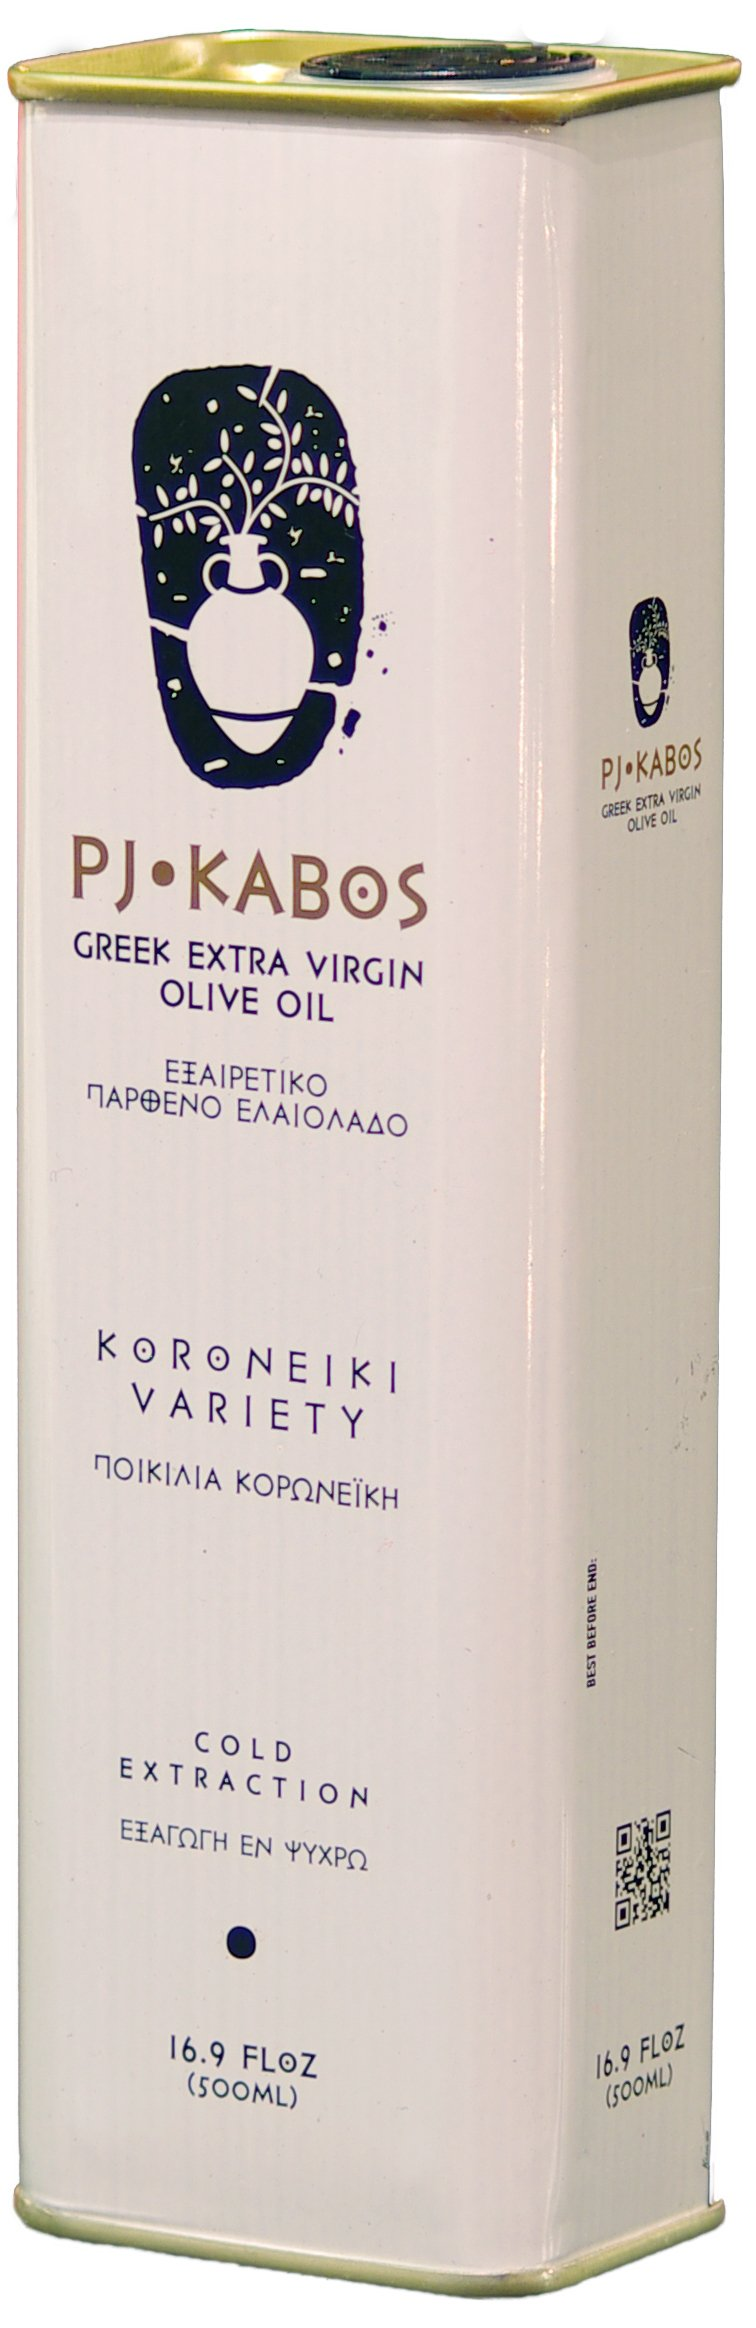 2017 GOLD Medal Winner PJ KABOS 16.9Floz Greek Extra Virgin Olive Oil | 100% FRESH olive oil born in Ancient Olympia vicinity | Greece | KORONEIKI Variety | 16.9Floz tin